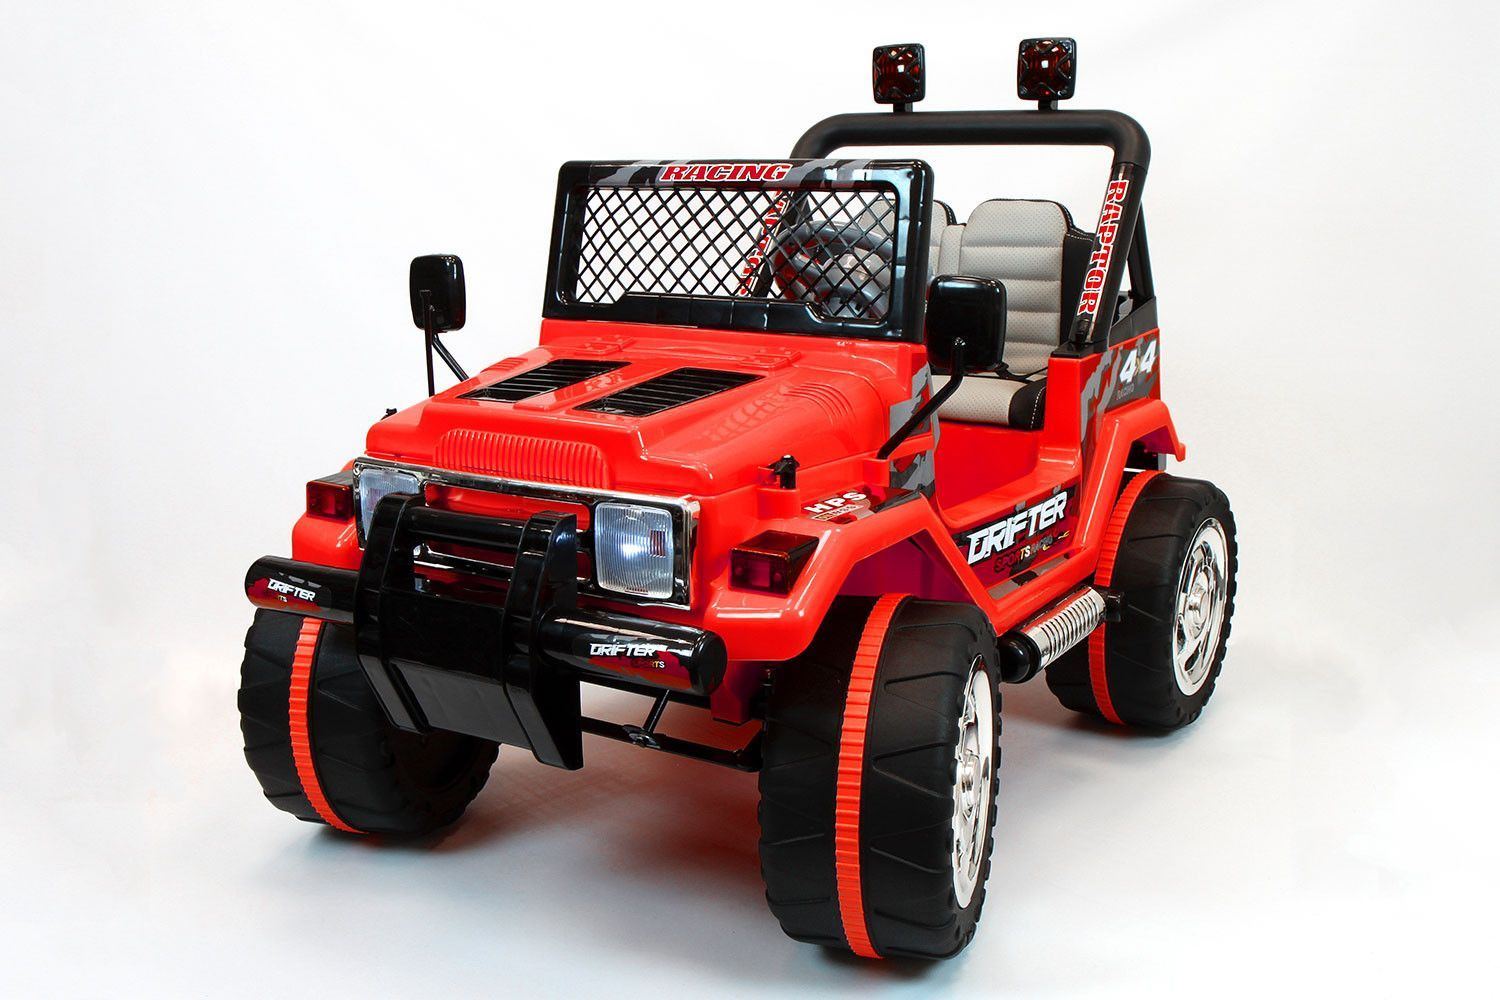 Jeep wrangler style 12v kids ride on car mp3 battery powered wheels rc remote